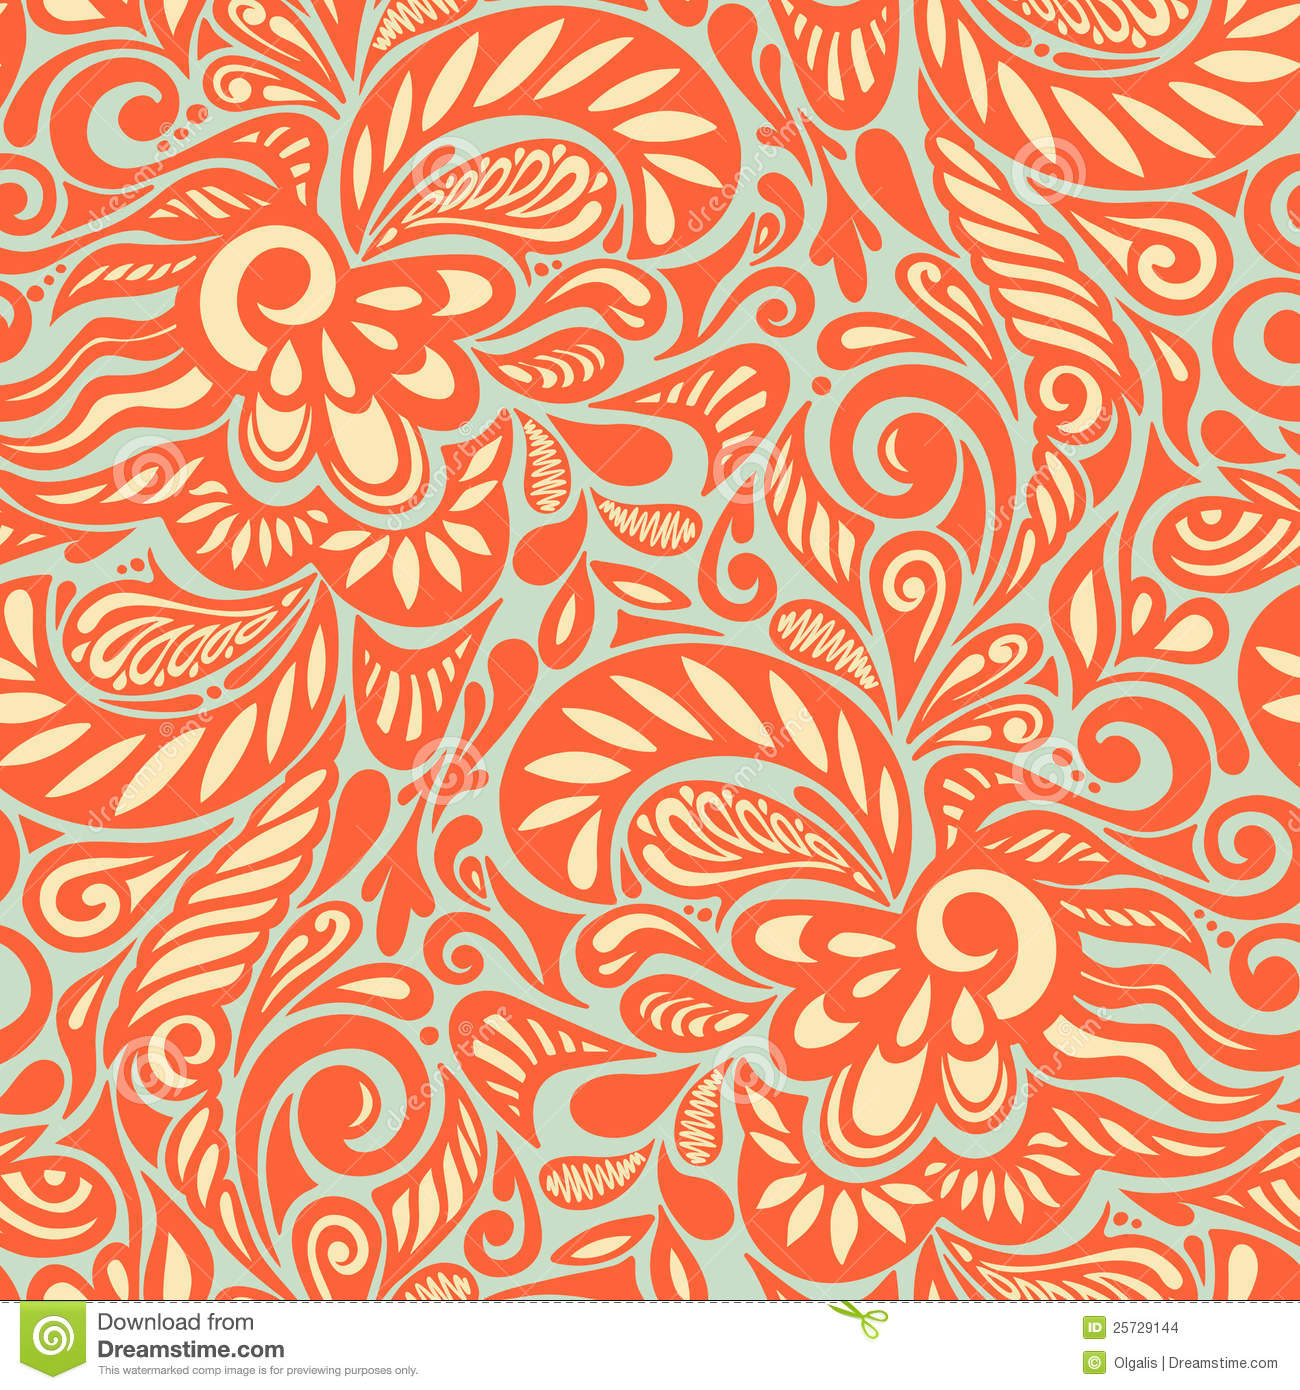 Against. What Free abstract floral pattern logically correctly